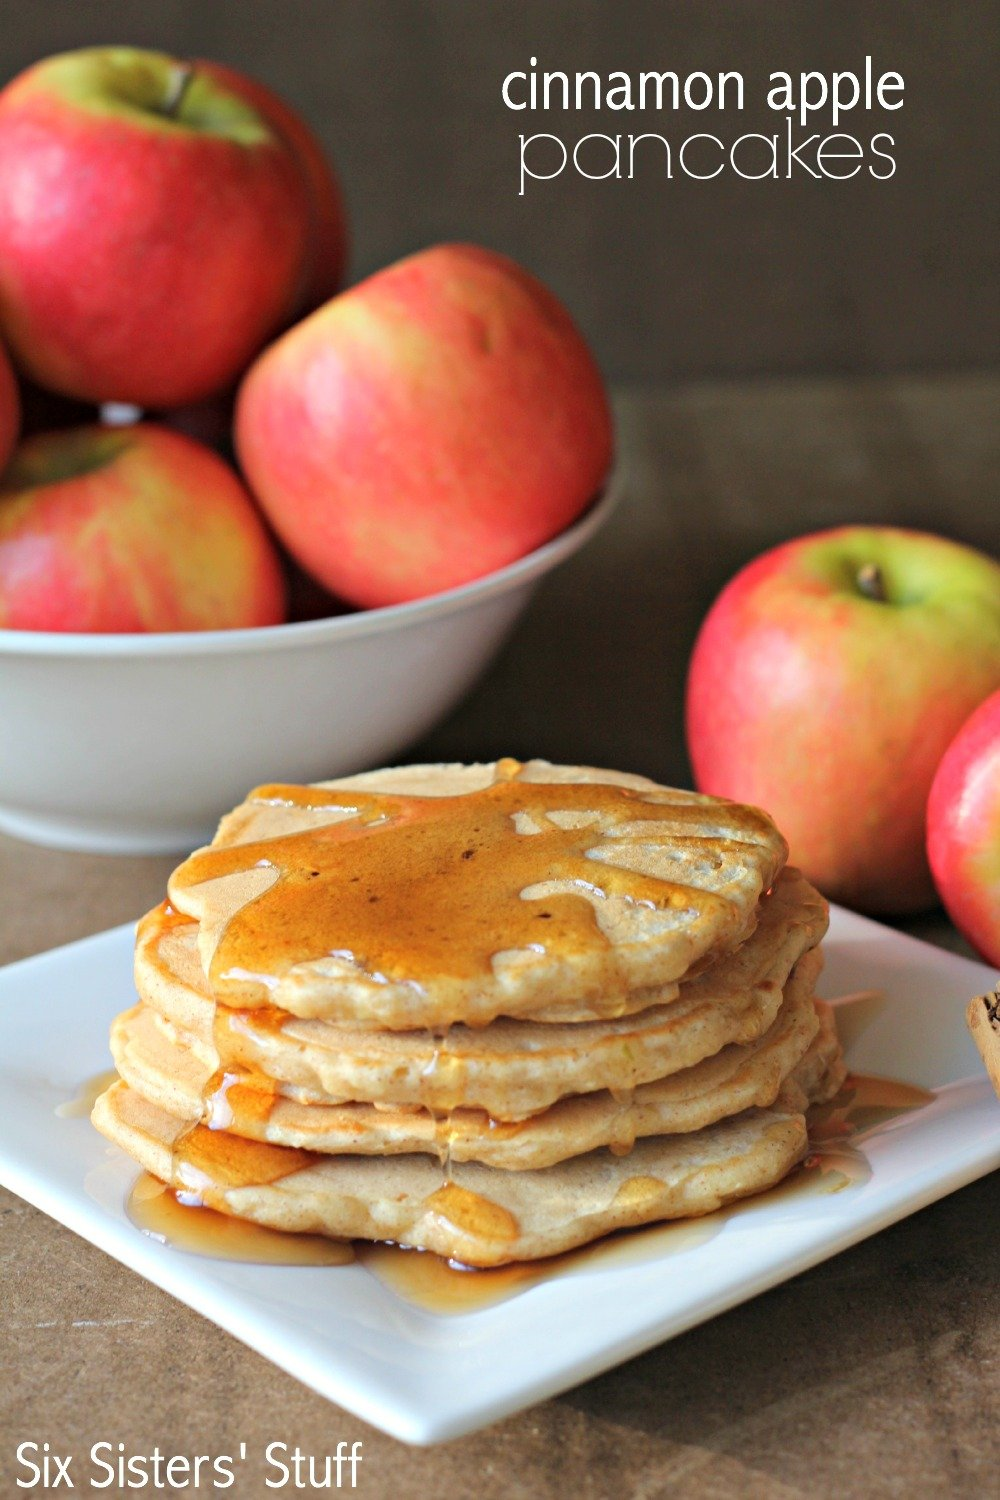 Cinnamon Apple Pancakes Recipe